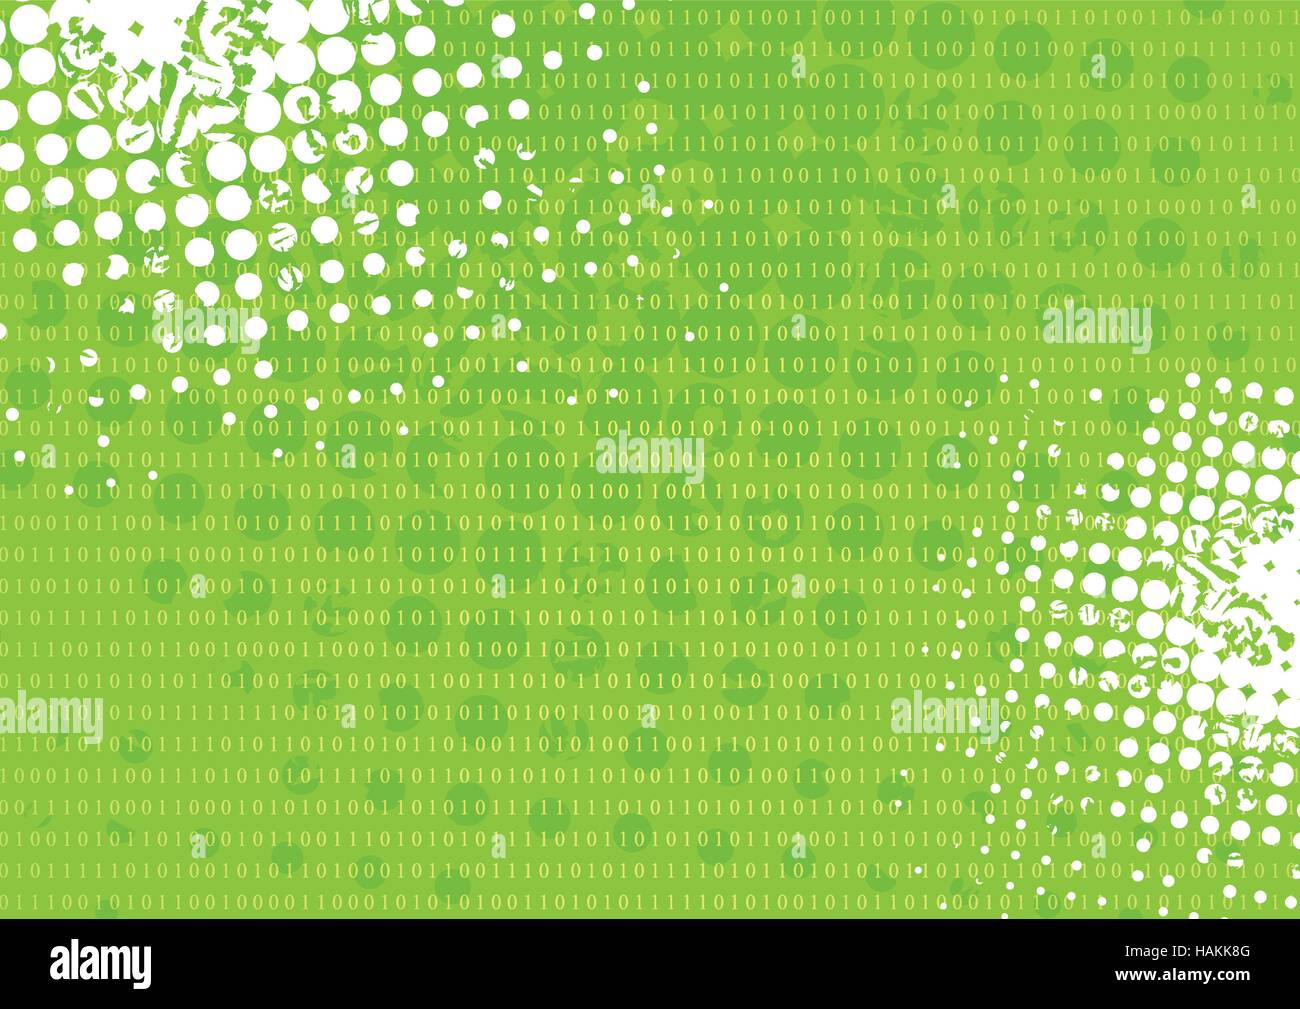 Tech grunge green binary system background. Vector technology design - Stock Vector